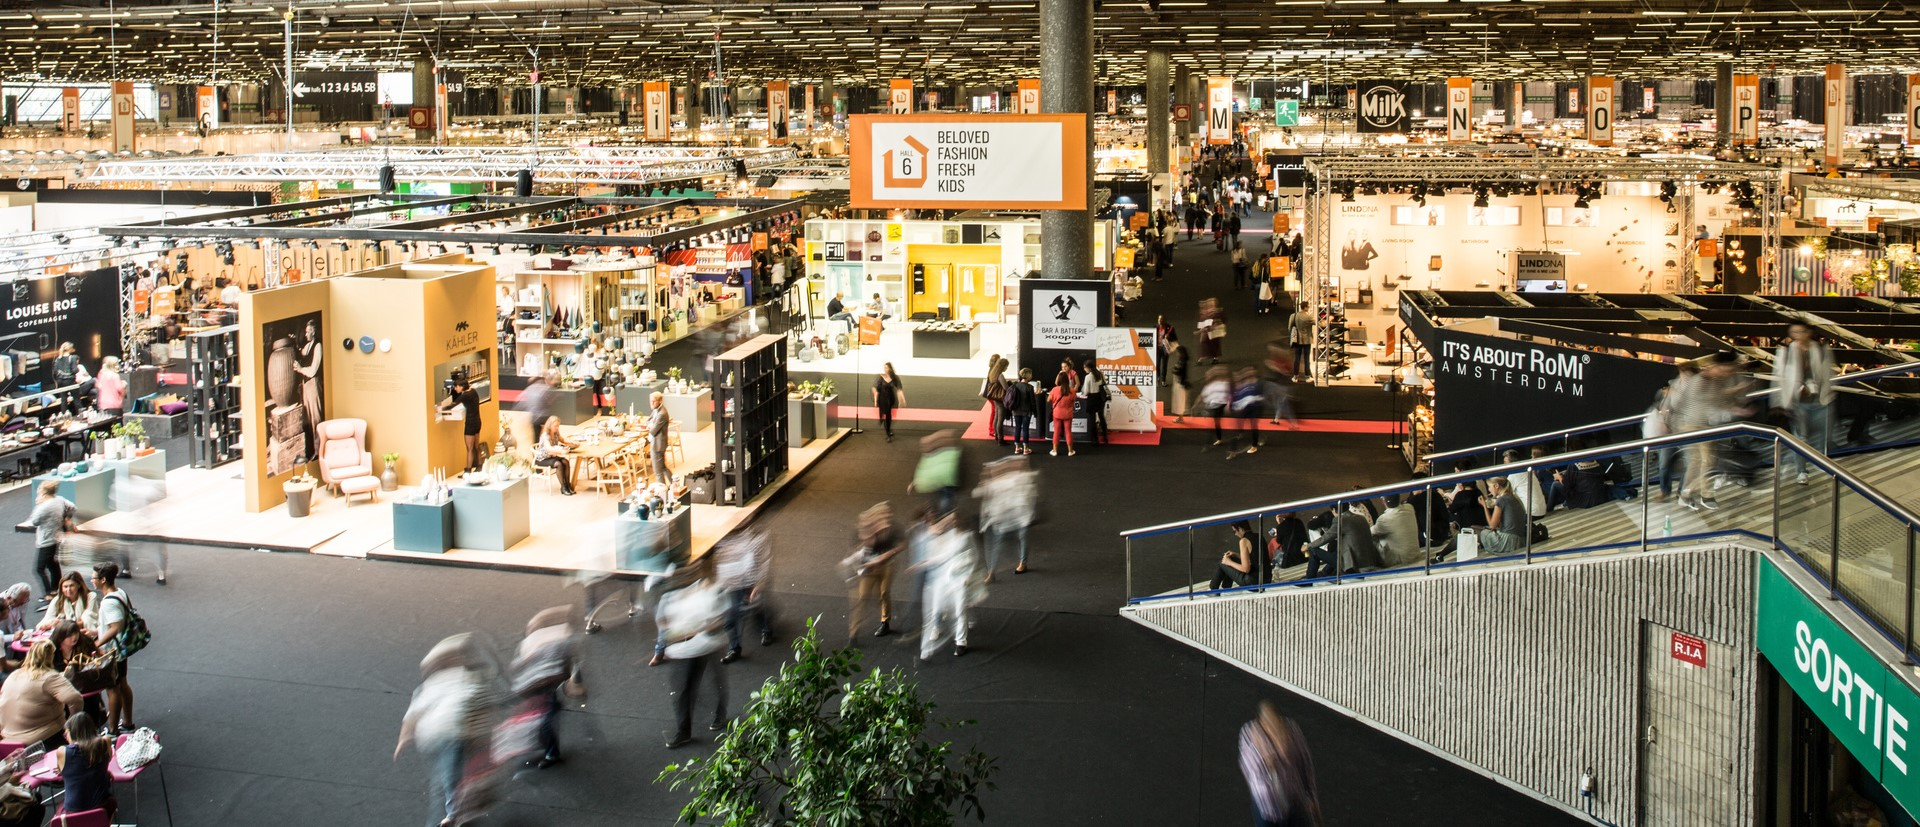 Expand the crafts market into Europe